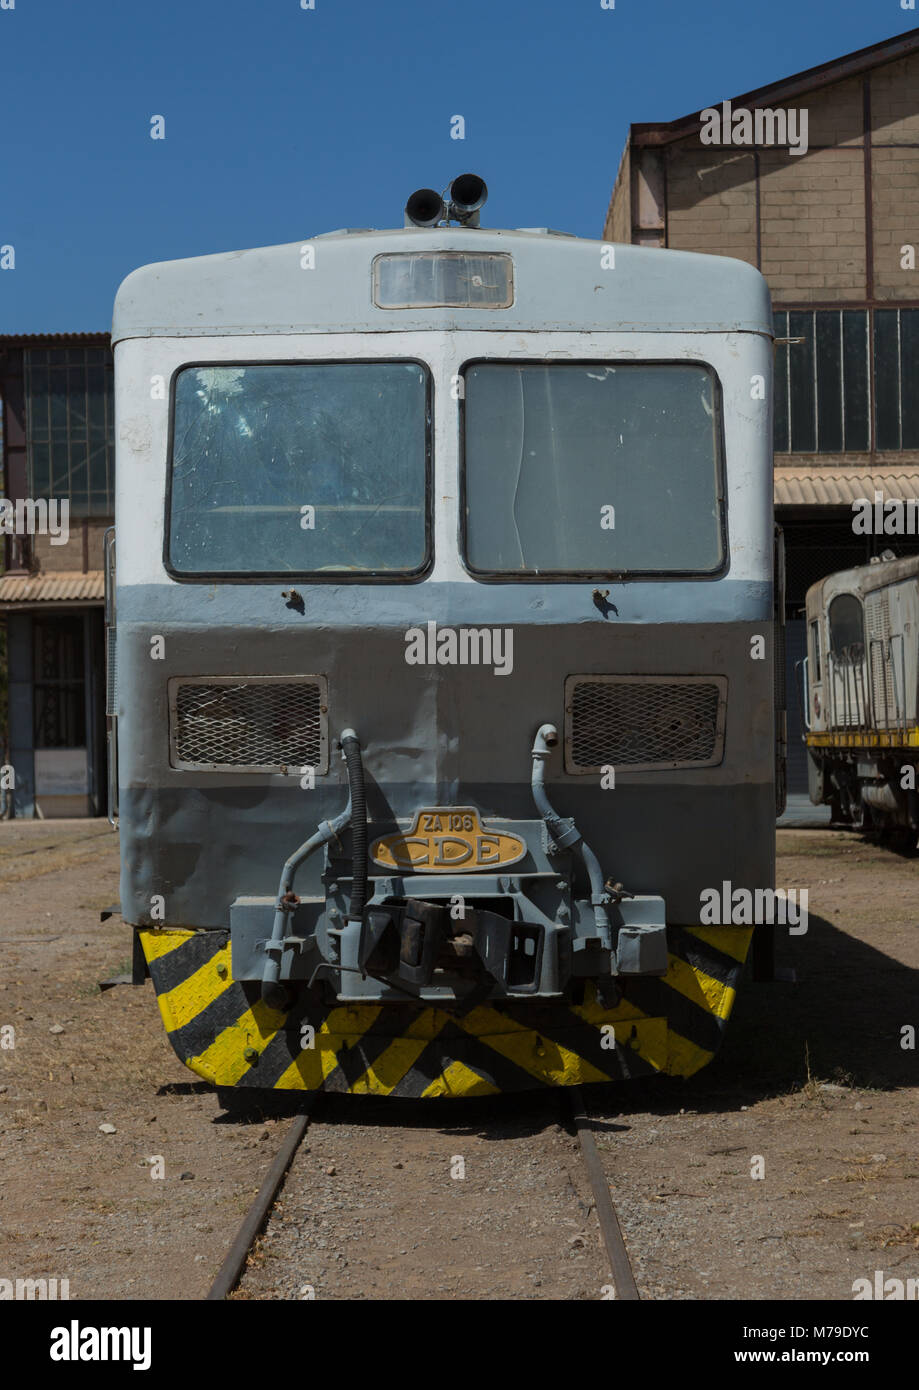 Cars of the ethio-djibouti railway station, Dire dawa region, Dire dawa, Ethiopia - Stock Image